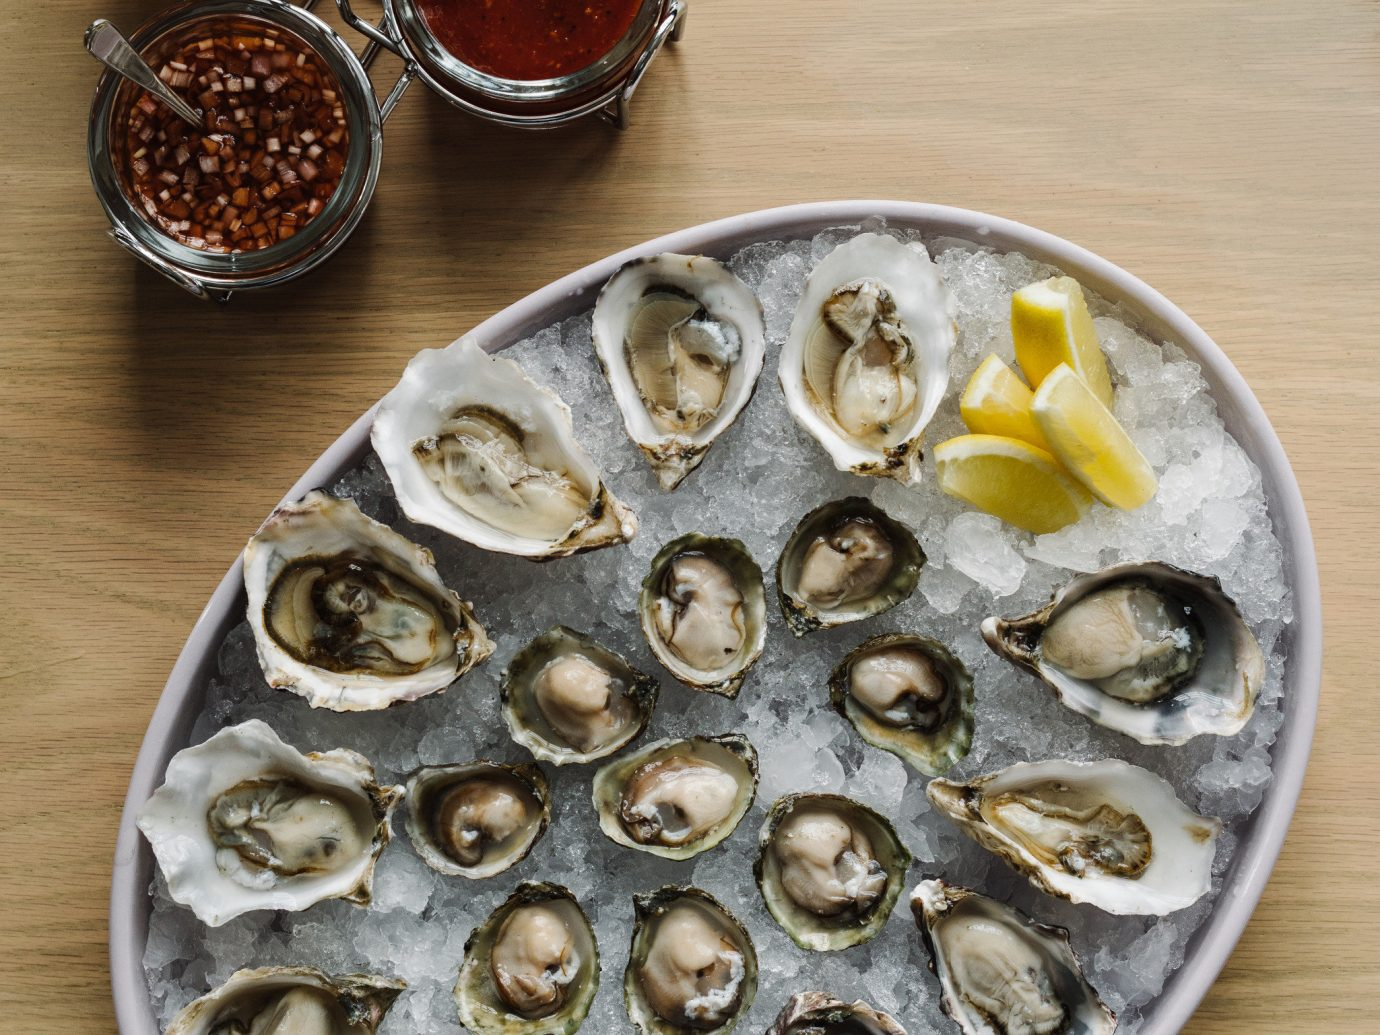 Trip Ideas Weekend Getaways table plate food dish Seafood fish produce wooden mussel clams oysters mussels and scallops meal animal source foods